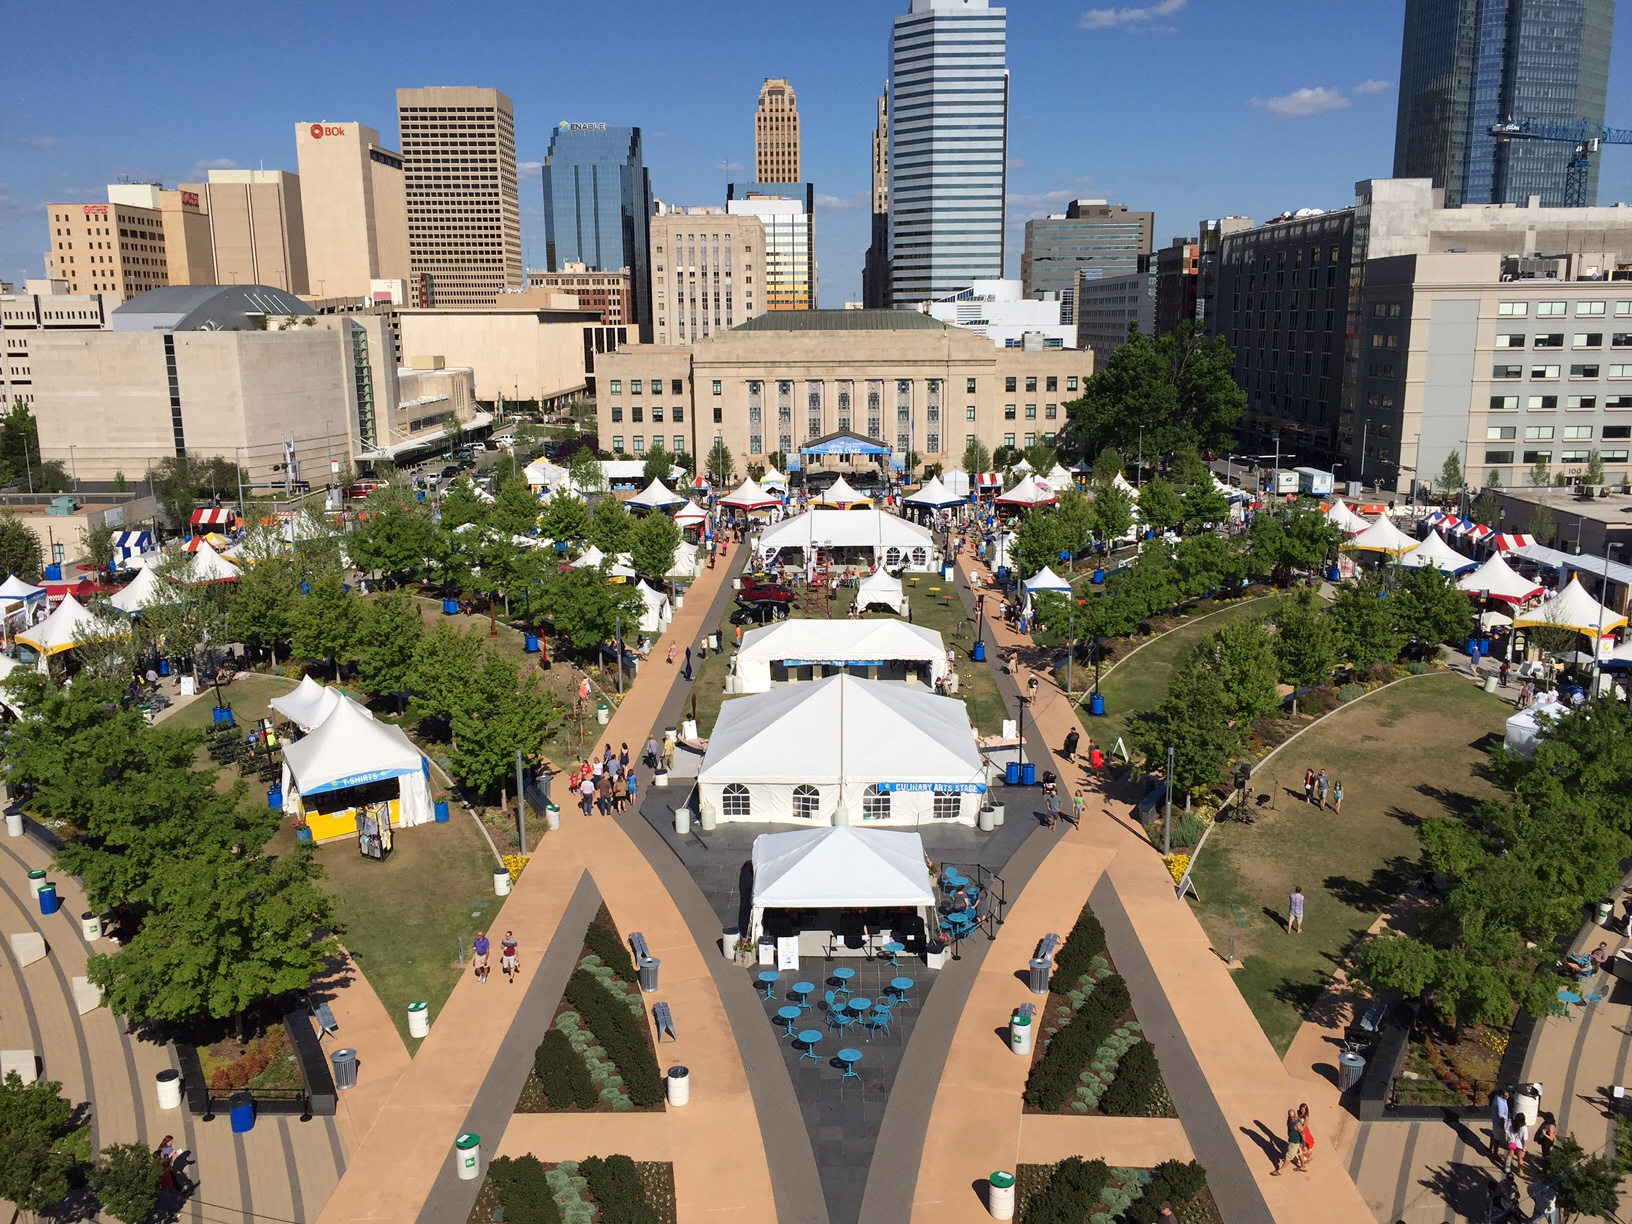 Oklahoma City Festival of the Arts at Bicentennial Park